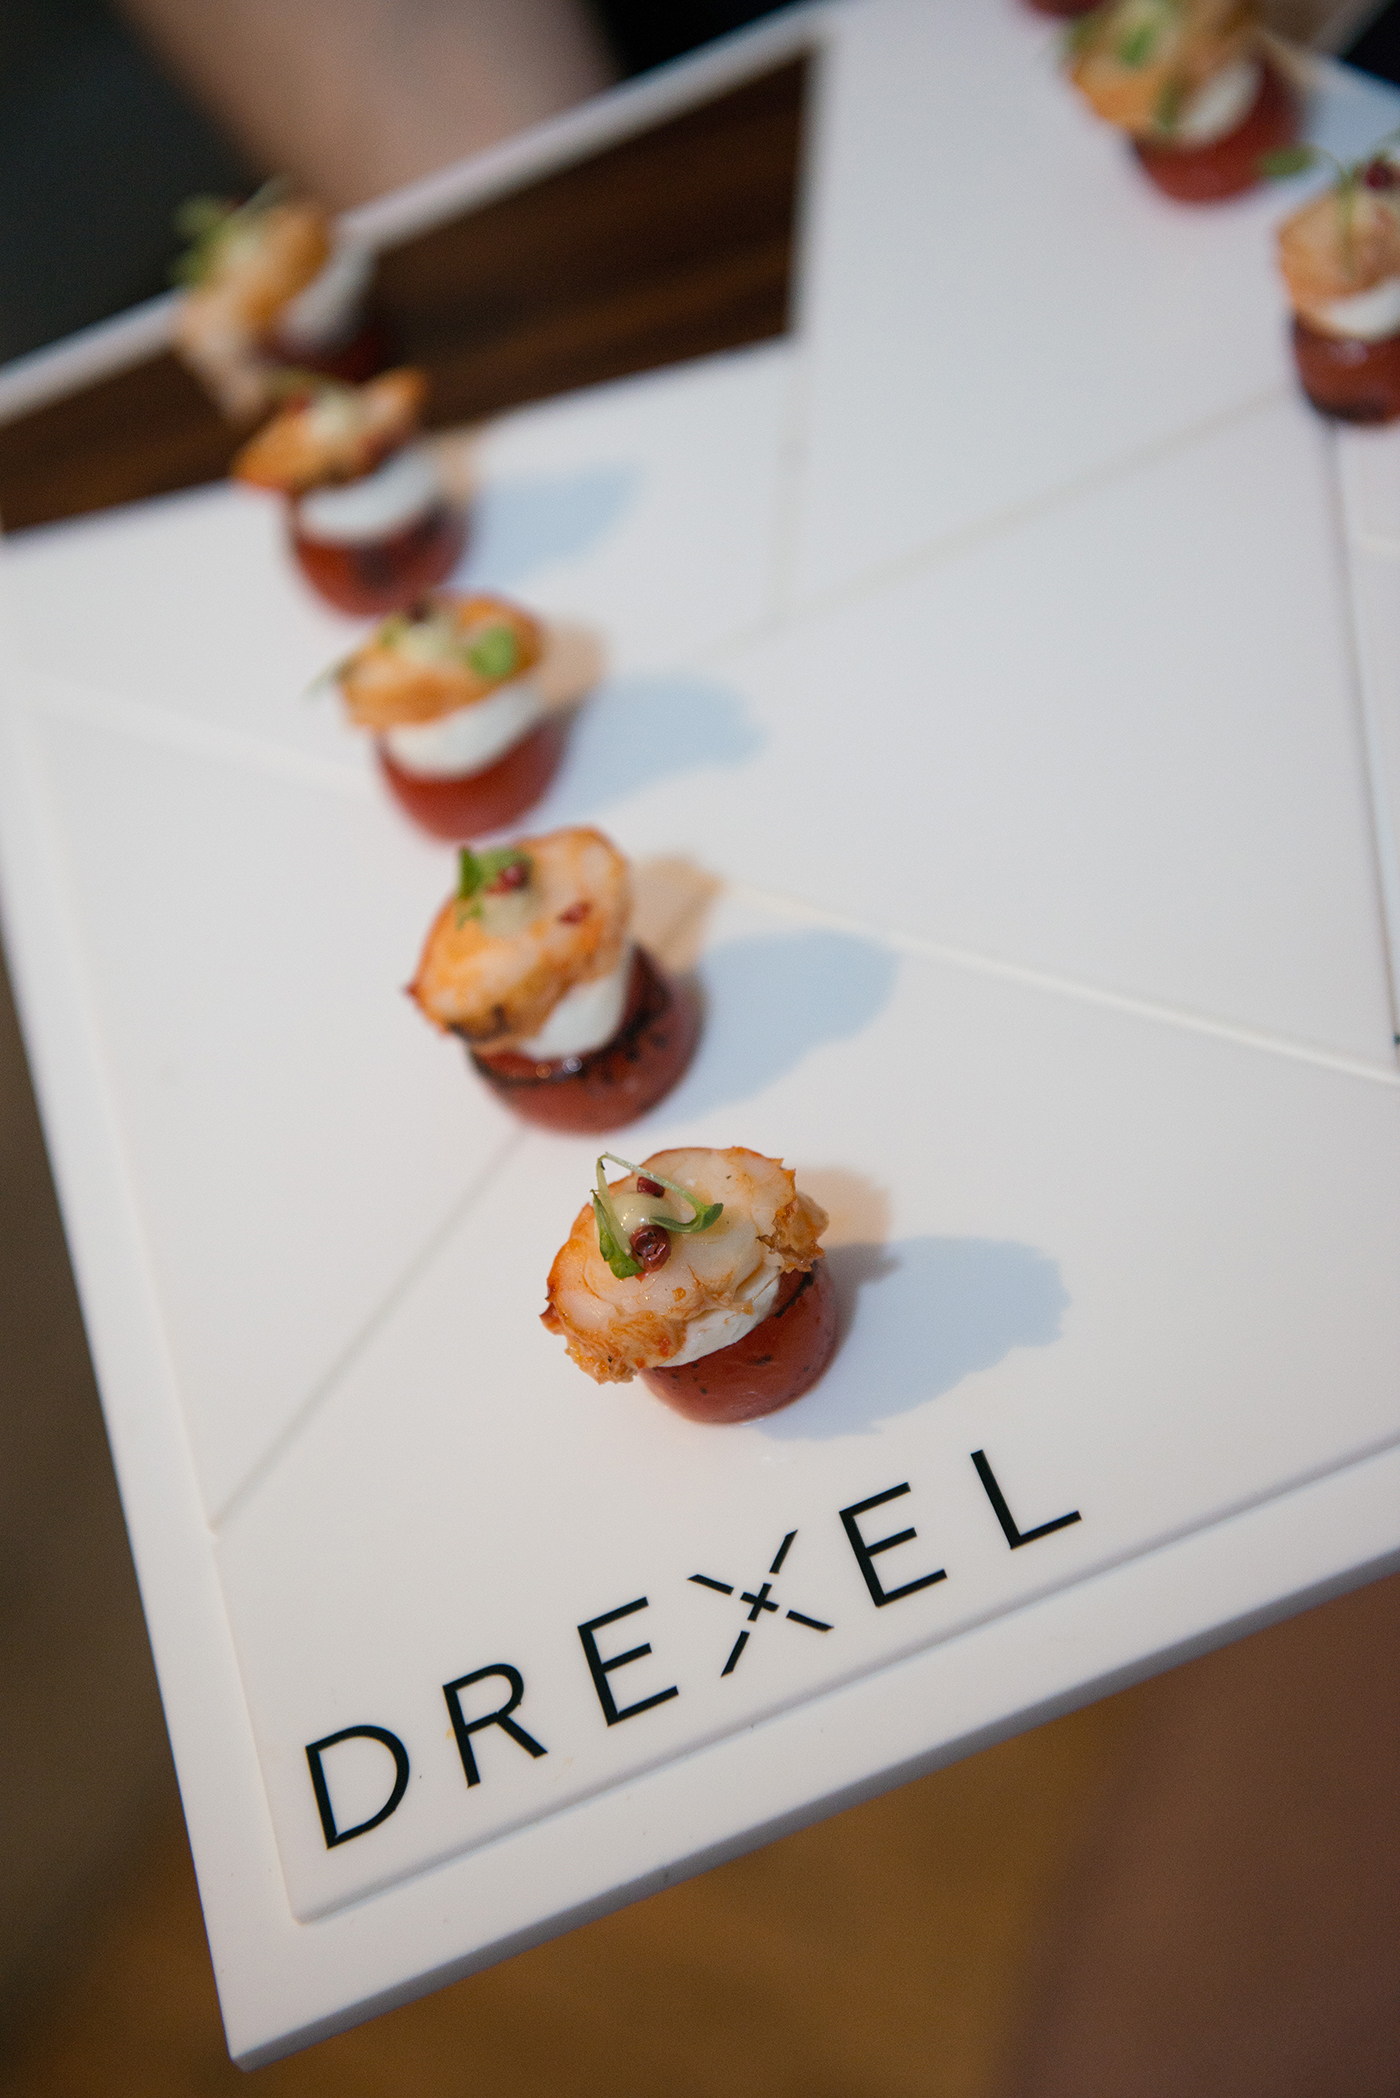 Appetizers served at the party